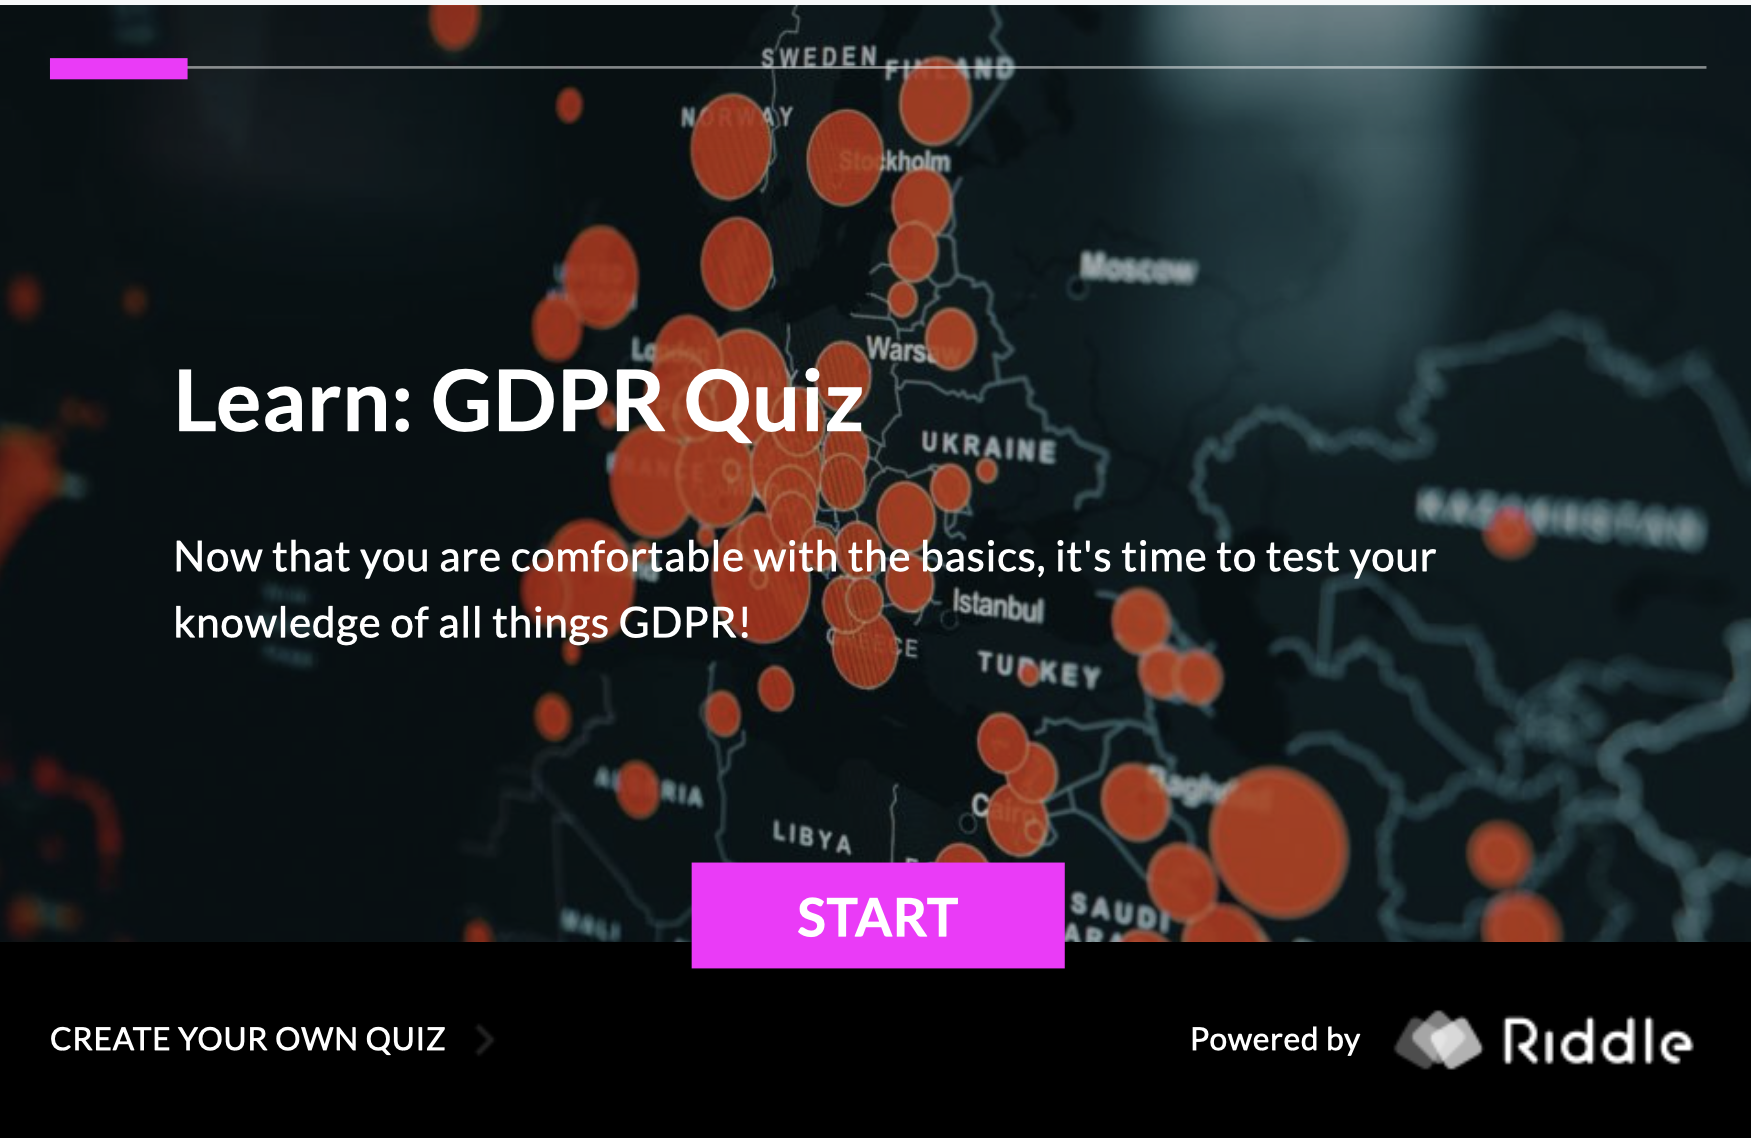 Try the quiz here